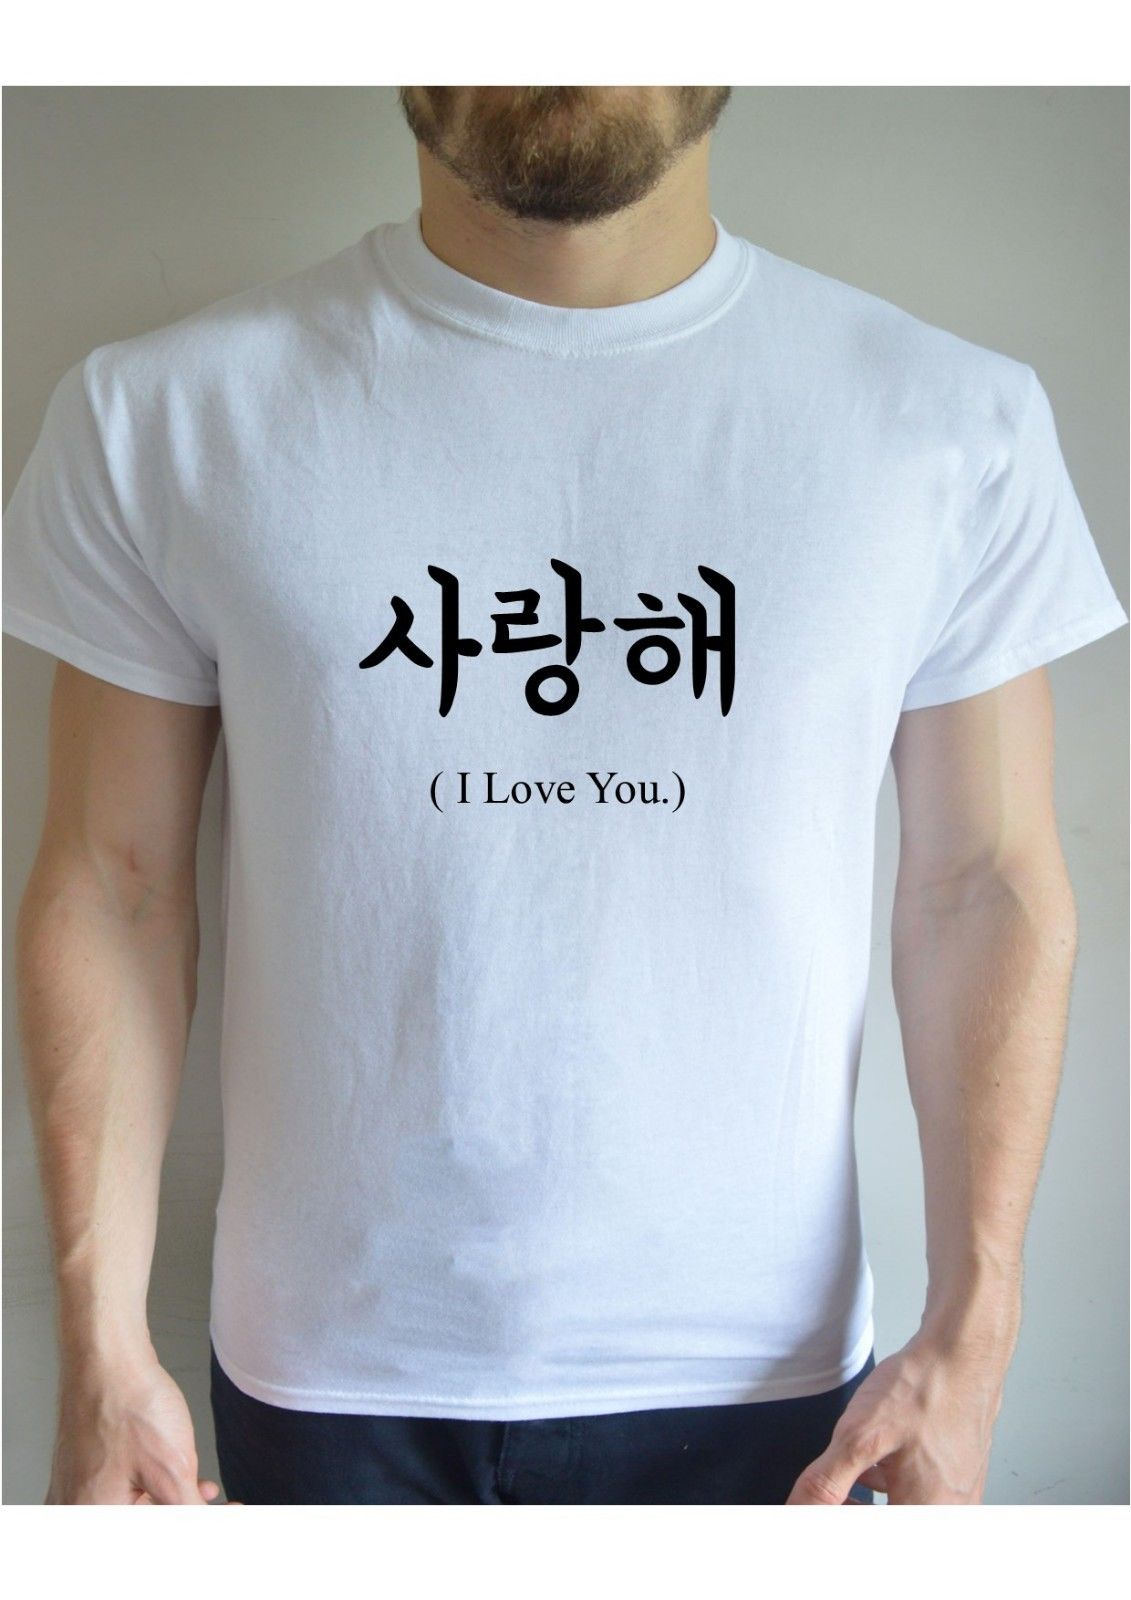 1f92aa47f59893 ... 2e154a6f0d I LOVE YOU Korean Printed T Shirt Top Tee Fashion Korea K  pop K drama ...